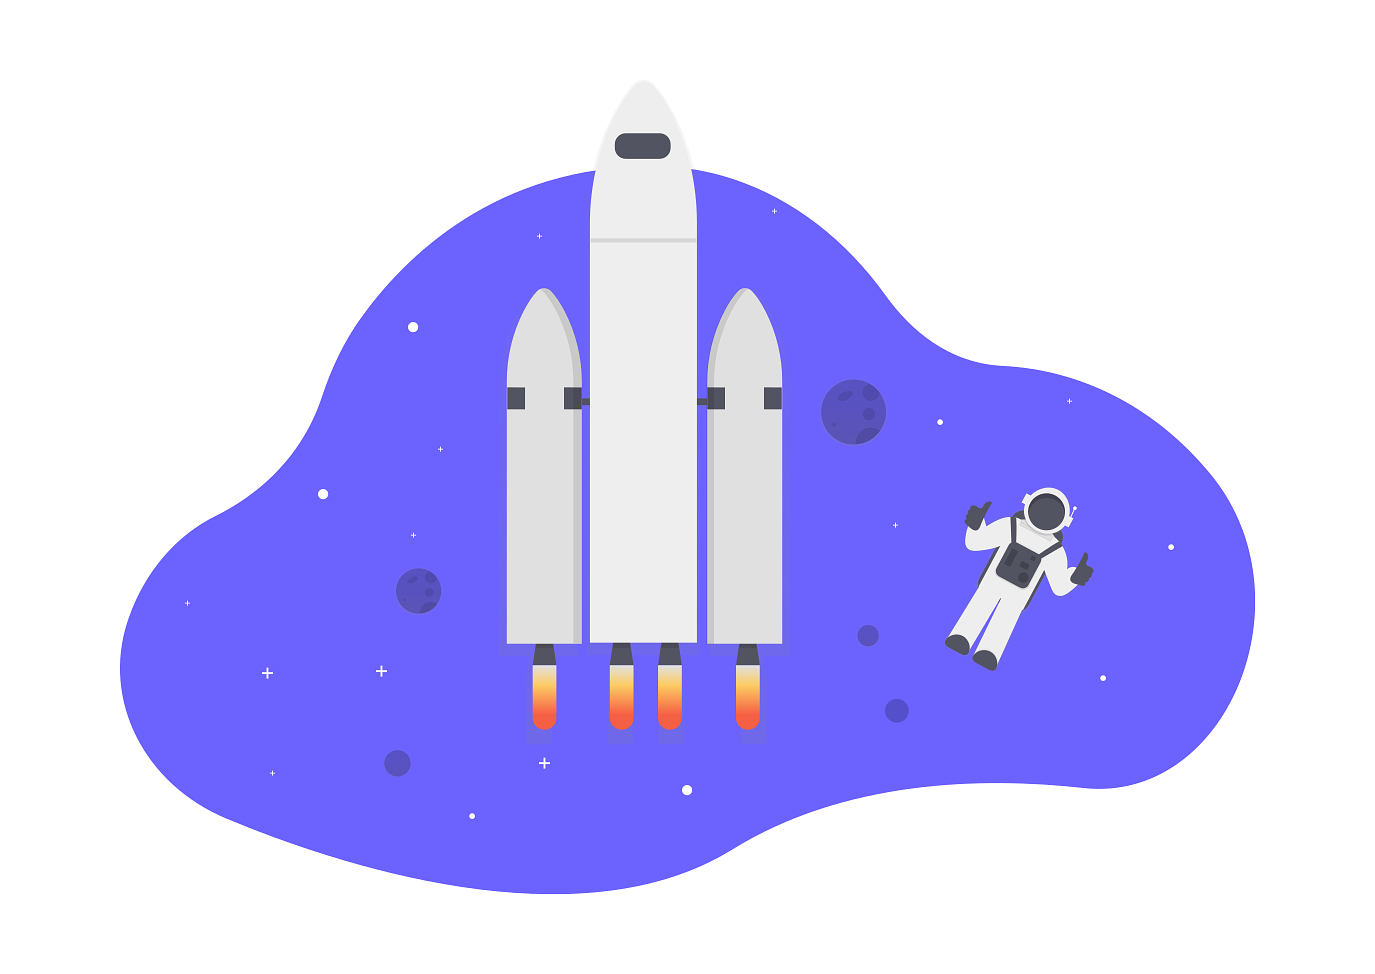 an illustration of a rocketship and astronaut as a metaphor for a product manager at a mature company